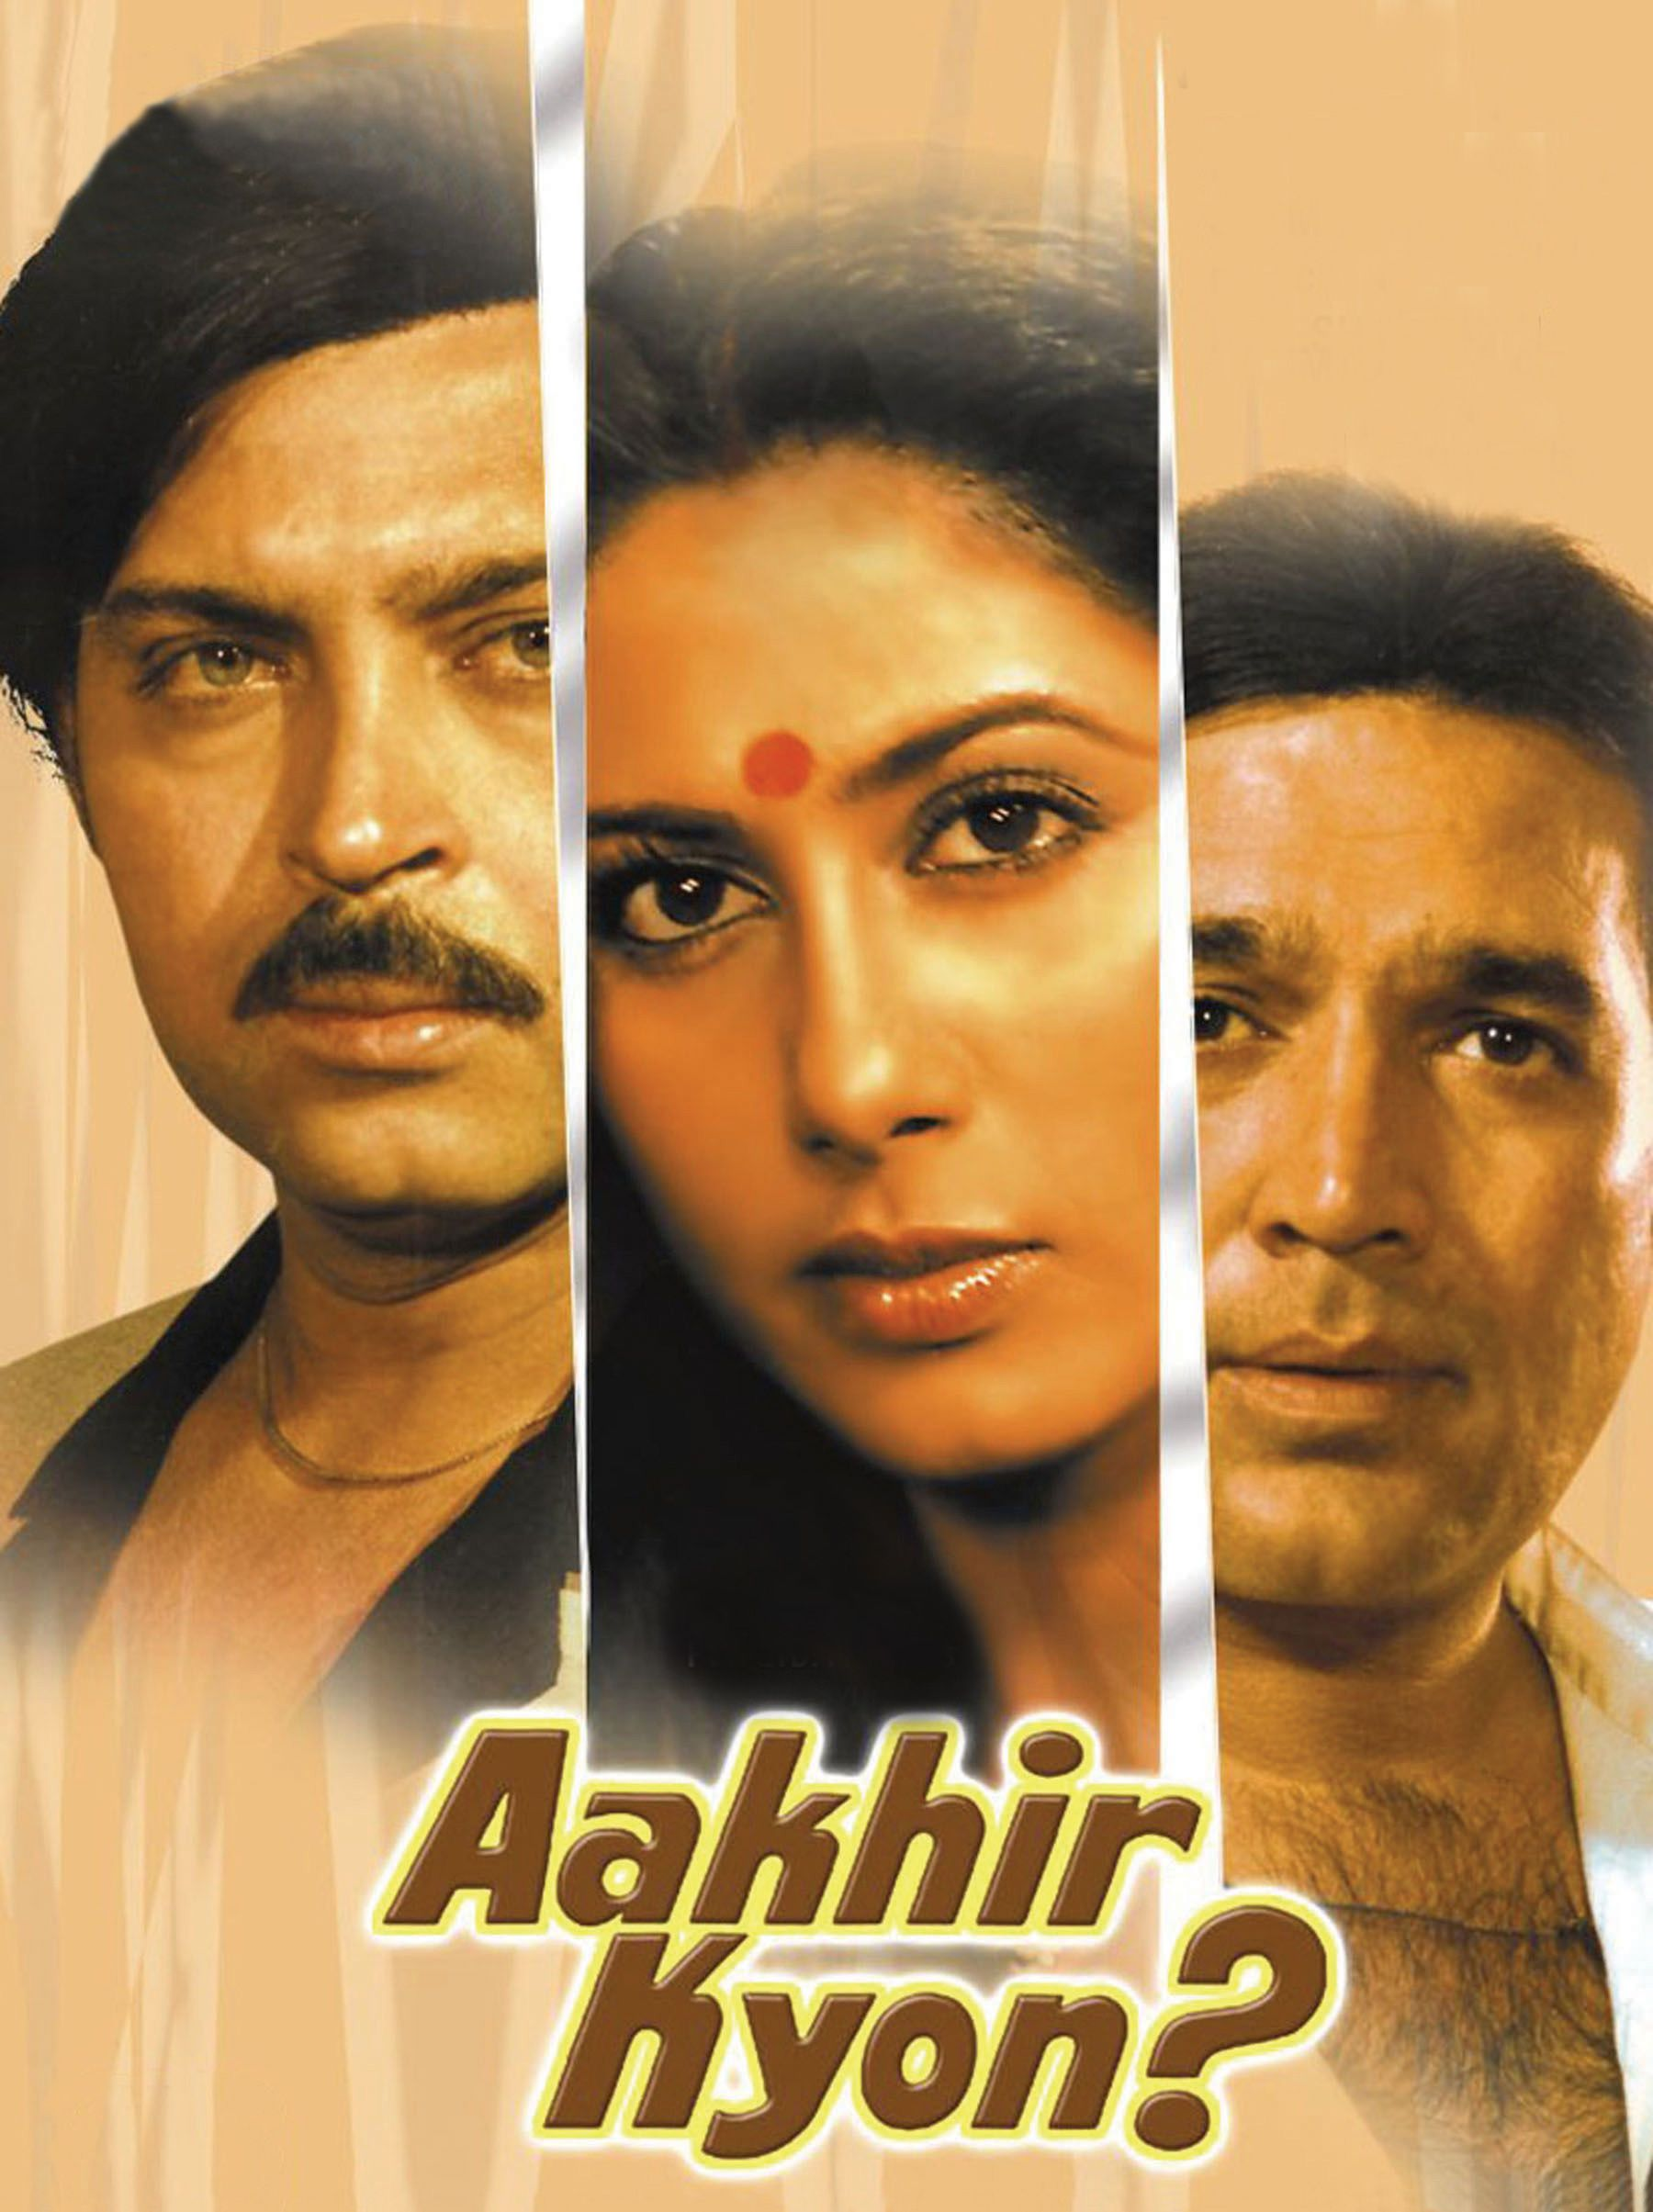 velaiyilla pattathari popularly referred to as vip is a 2014 aakhir kyon is a 1985 n bollywood film produced and directed by j om